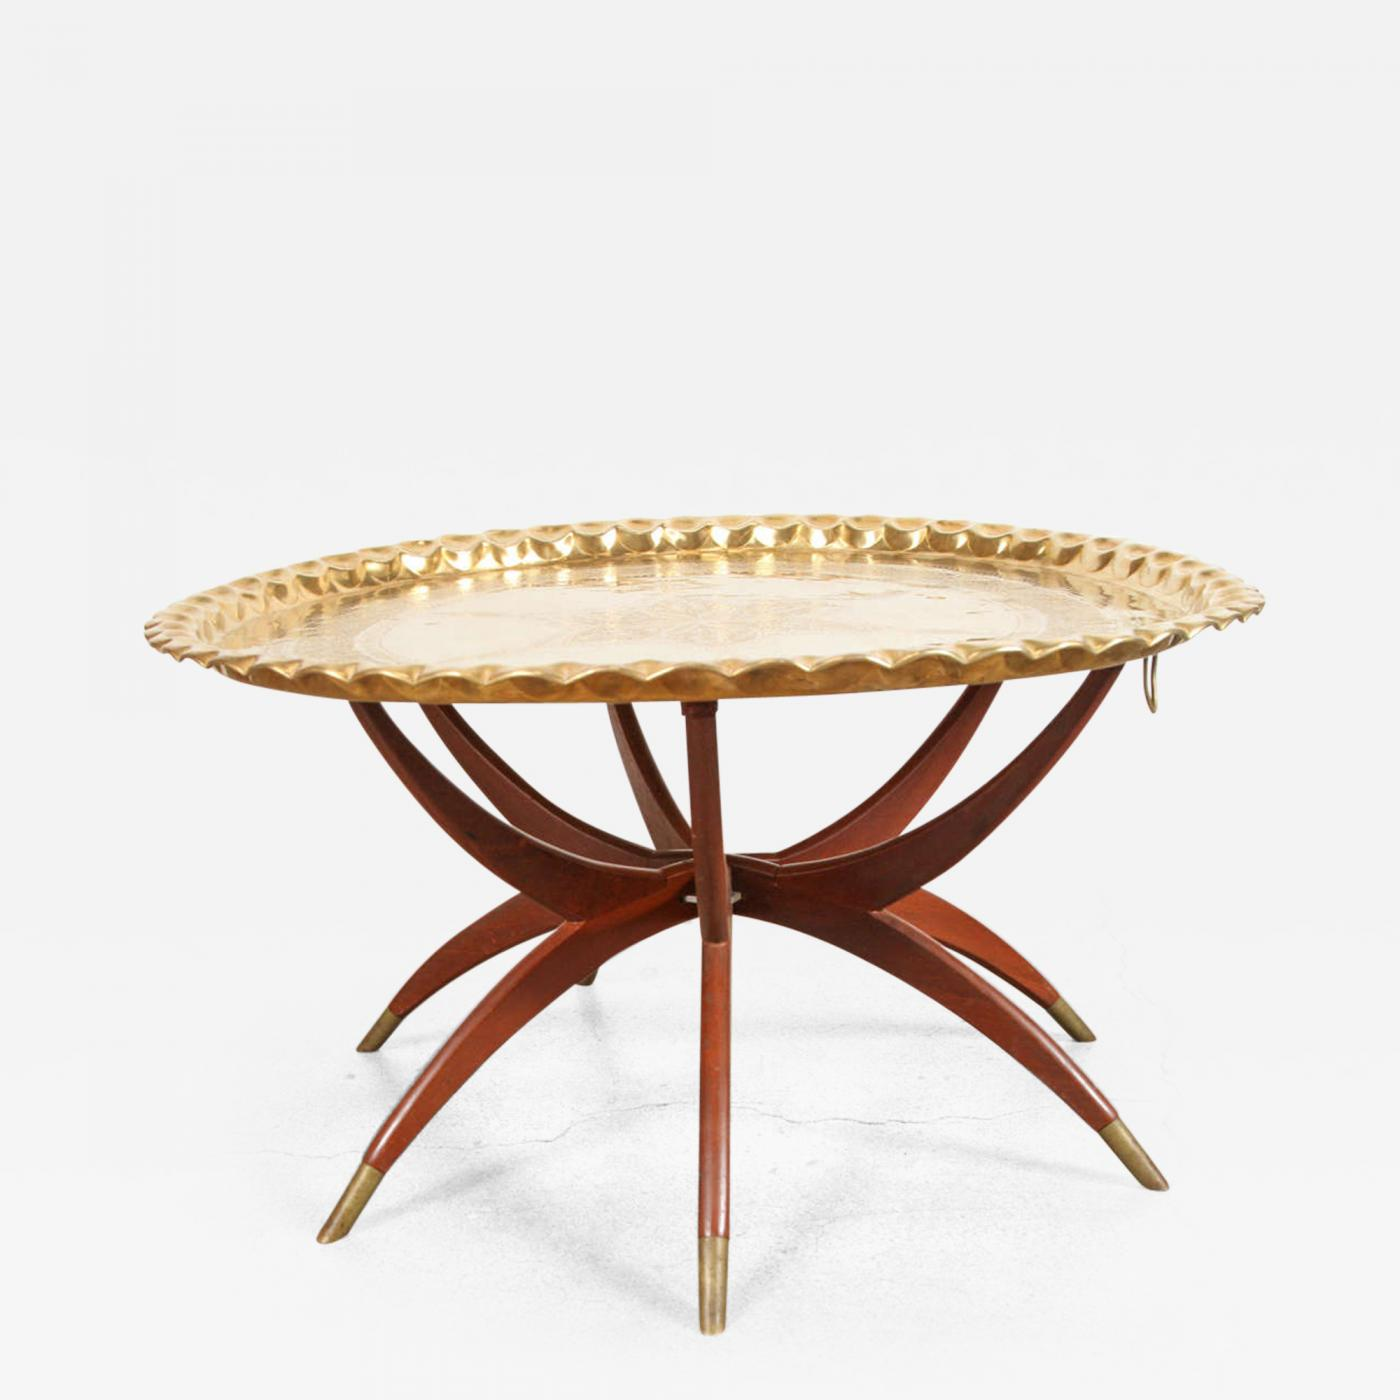 Charmant Listings / Furniture / Tables / Serving Tables · Moroccan Brass Tray Table  On Spider Folding Stand